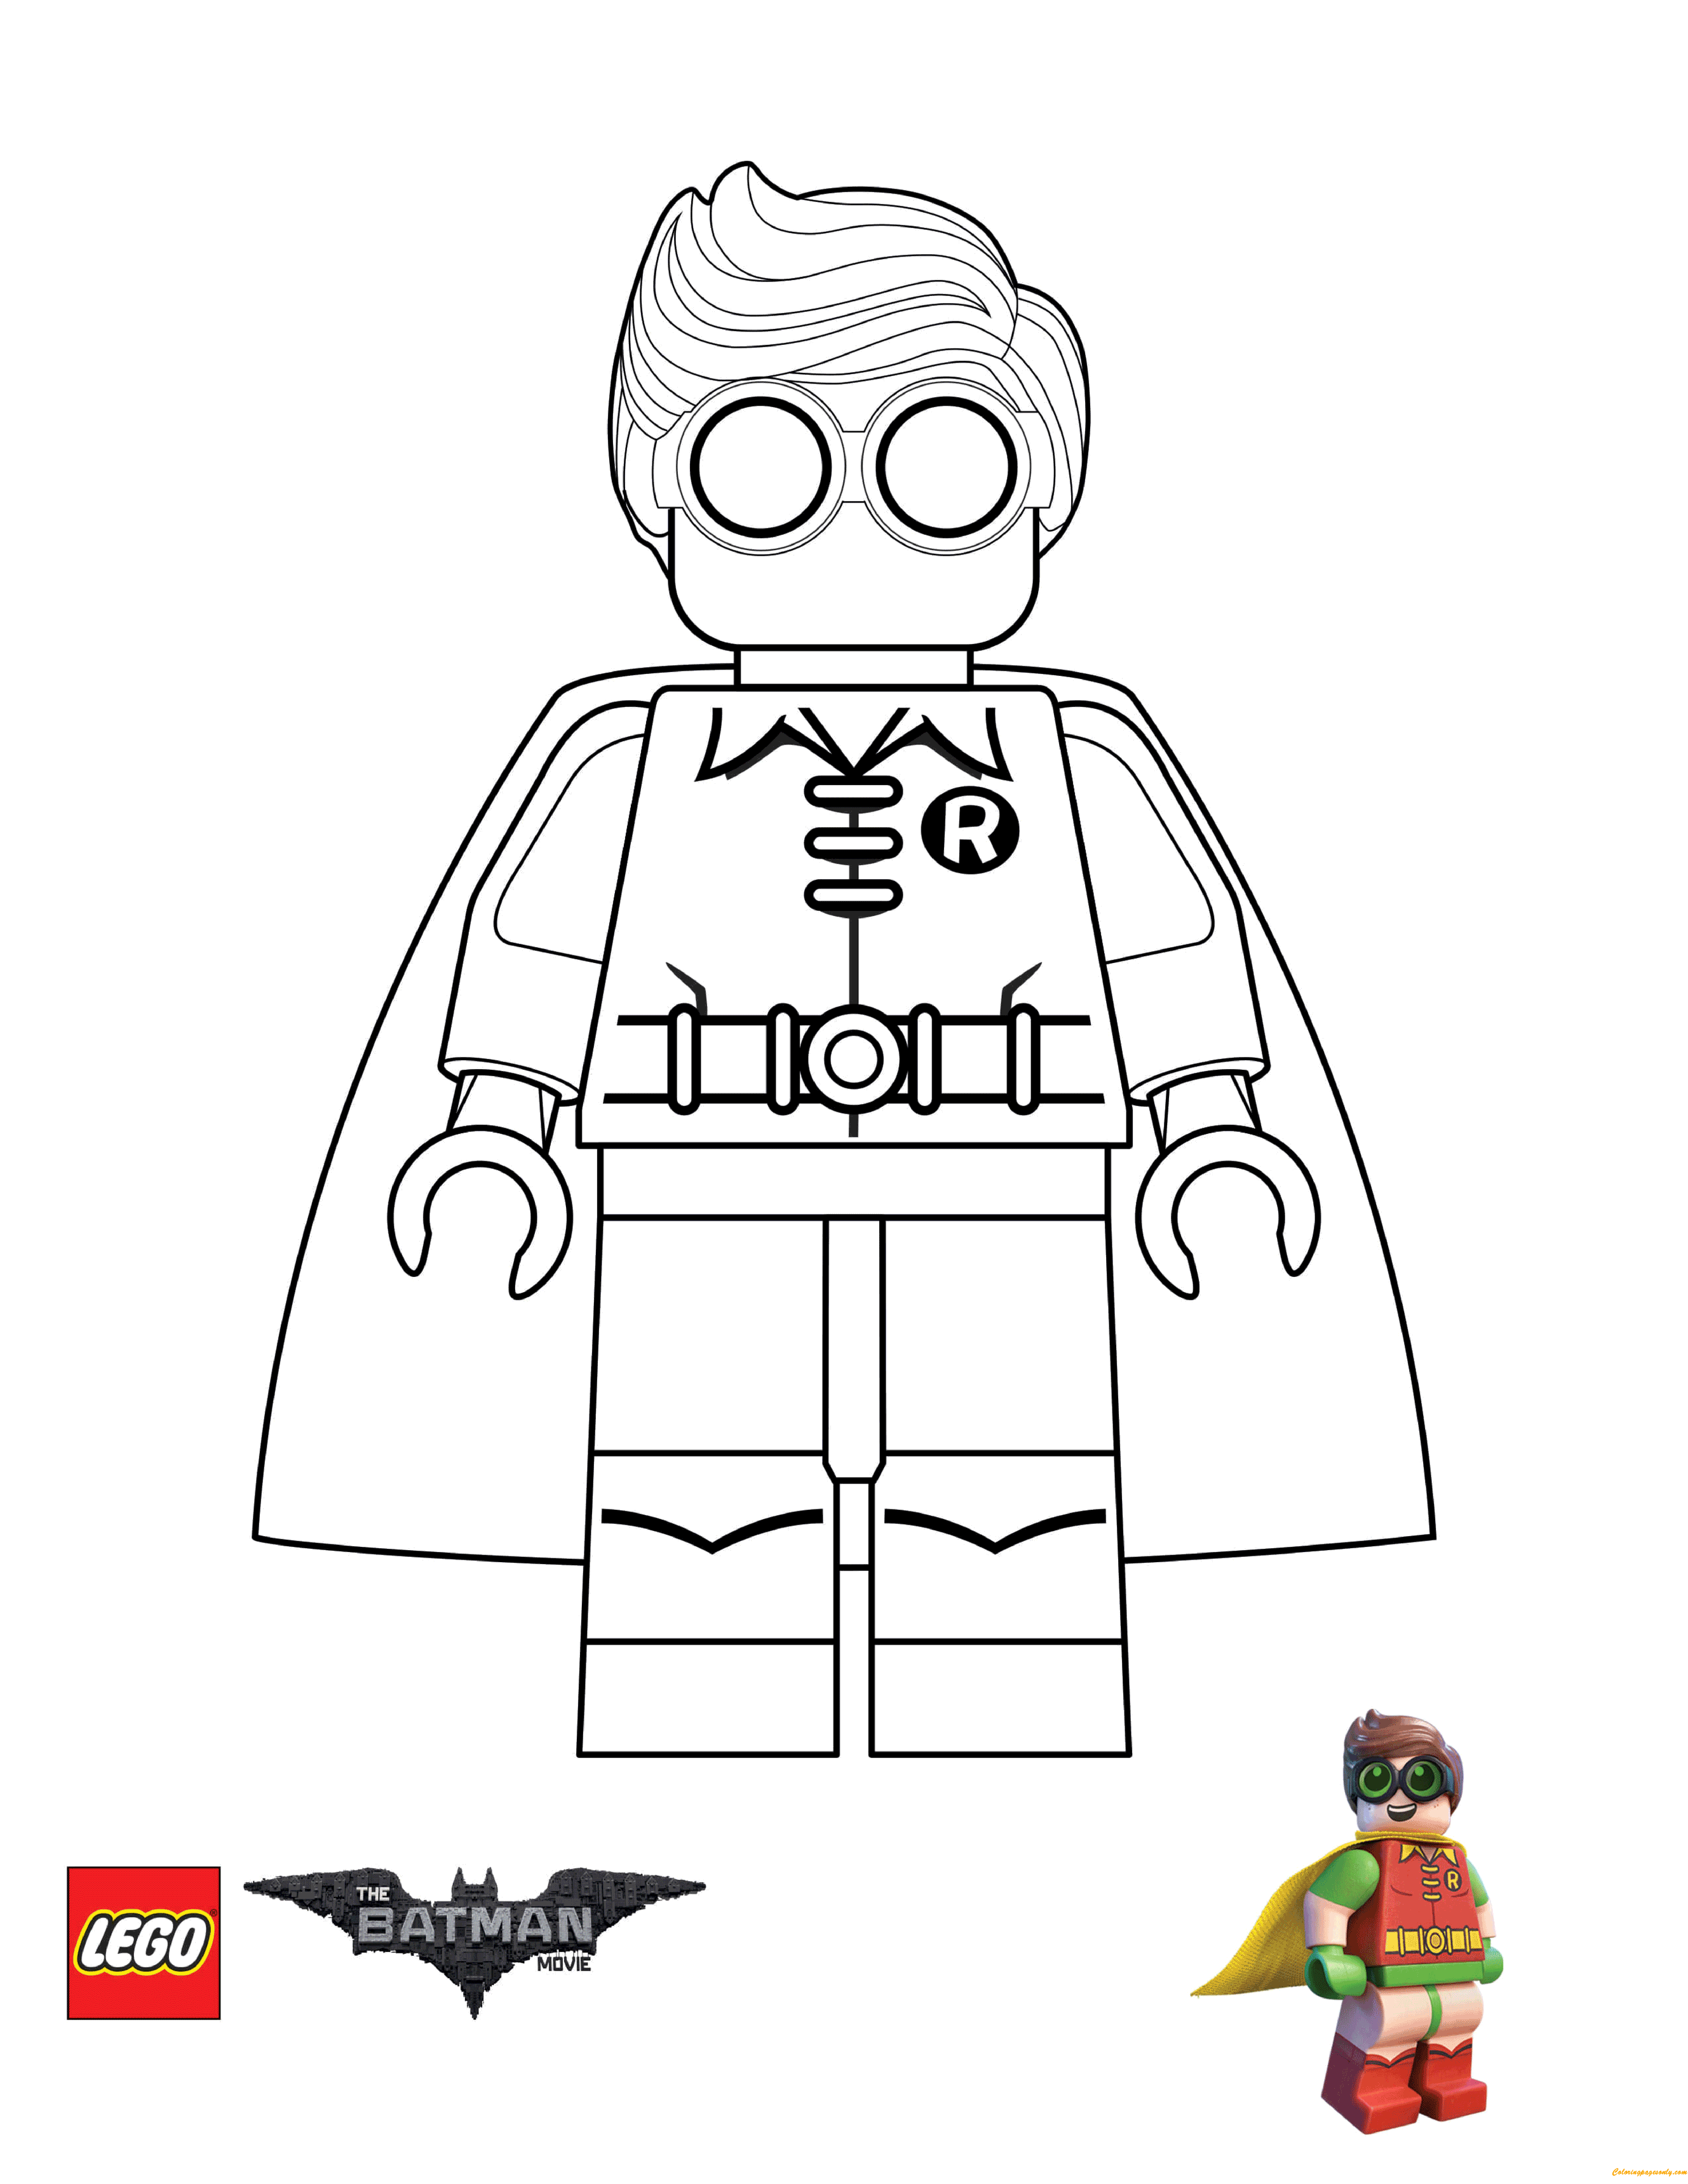 Robin From Lego Batman Movie Coloring Page Free Coloring Pages